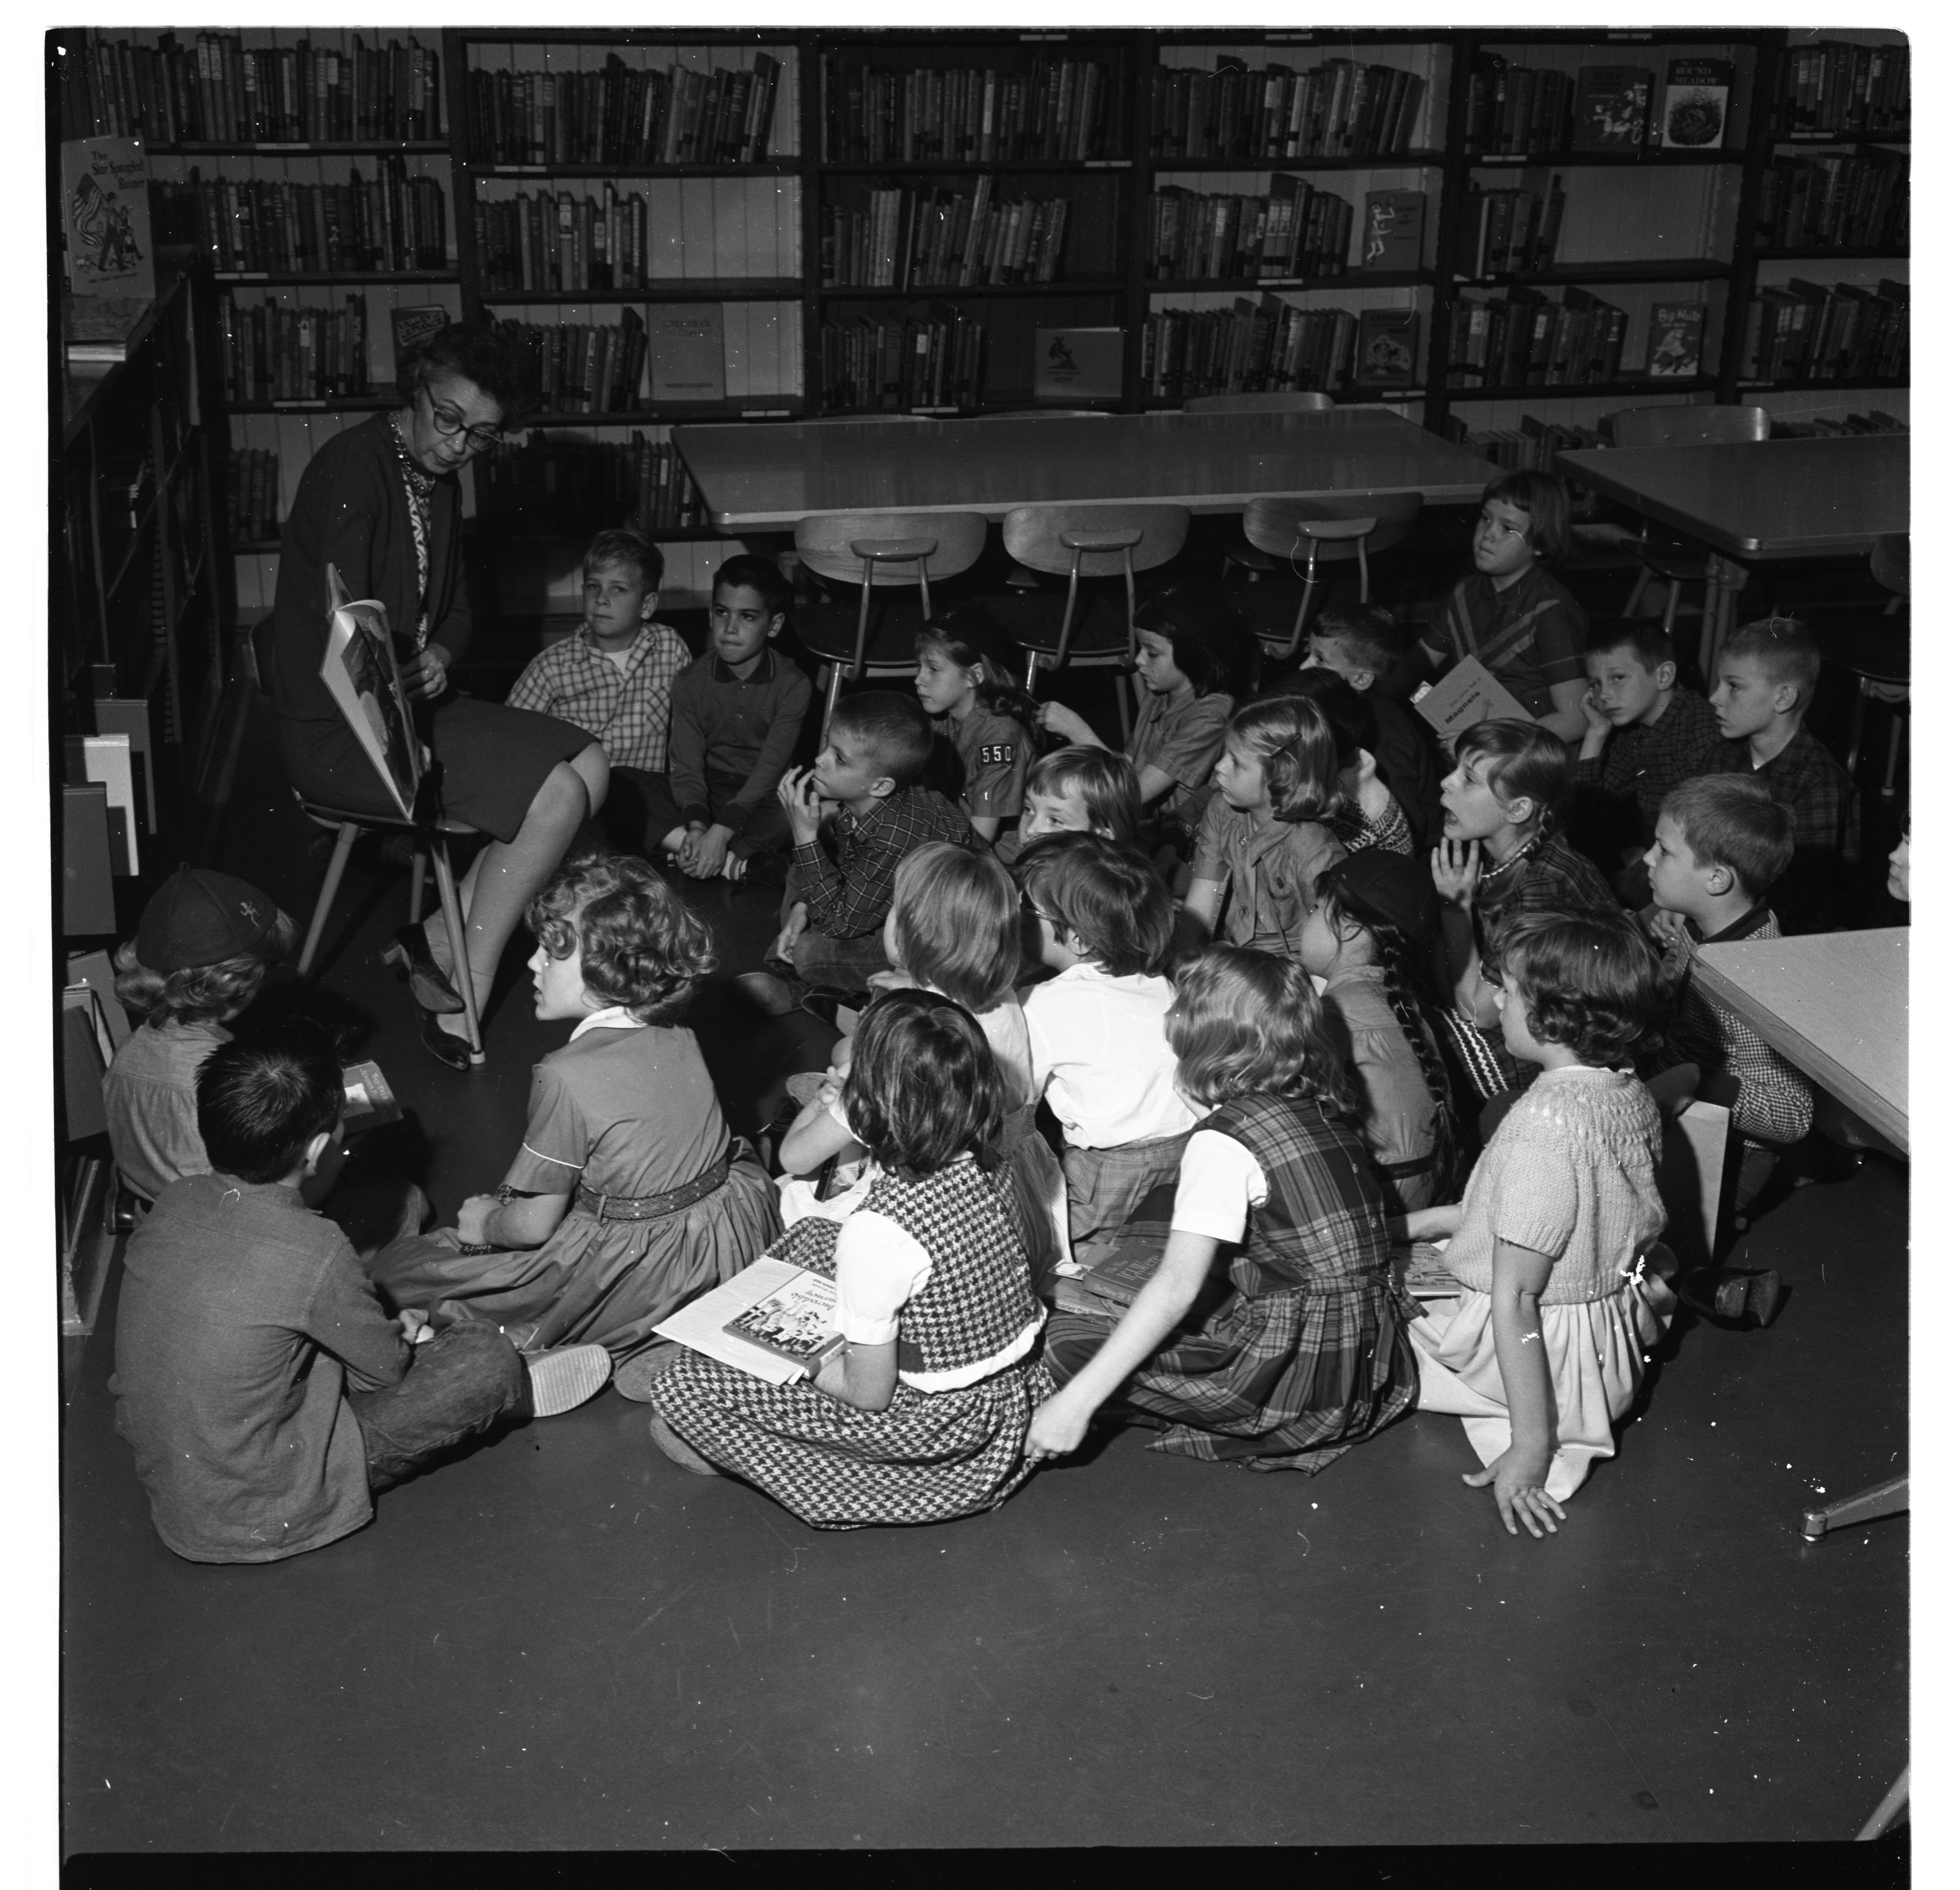 Story-Telling, Bach Elementary School Library, November 1963 image